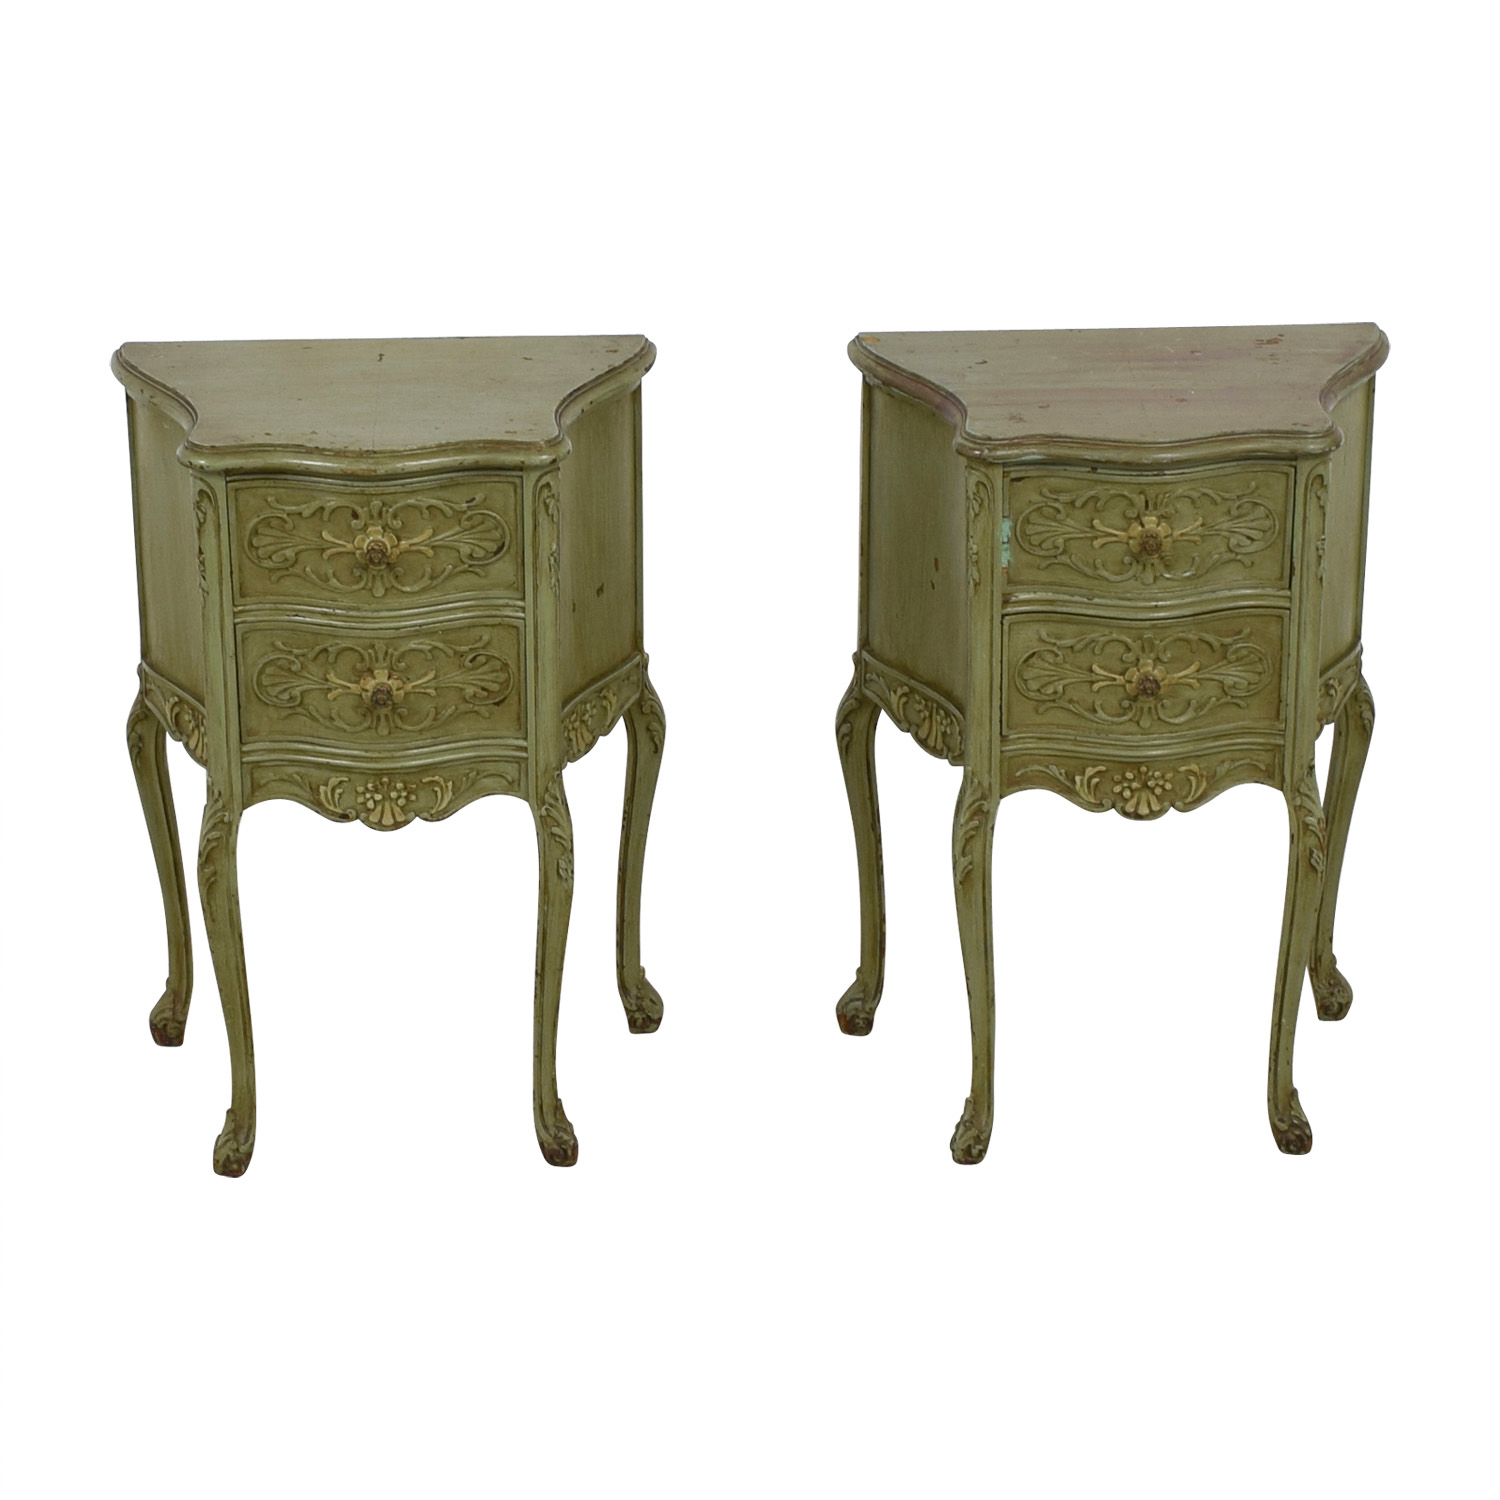 62 Off Antique Green Carved Wood Side Tables Tables